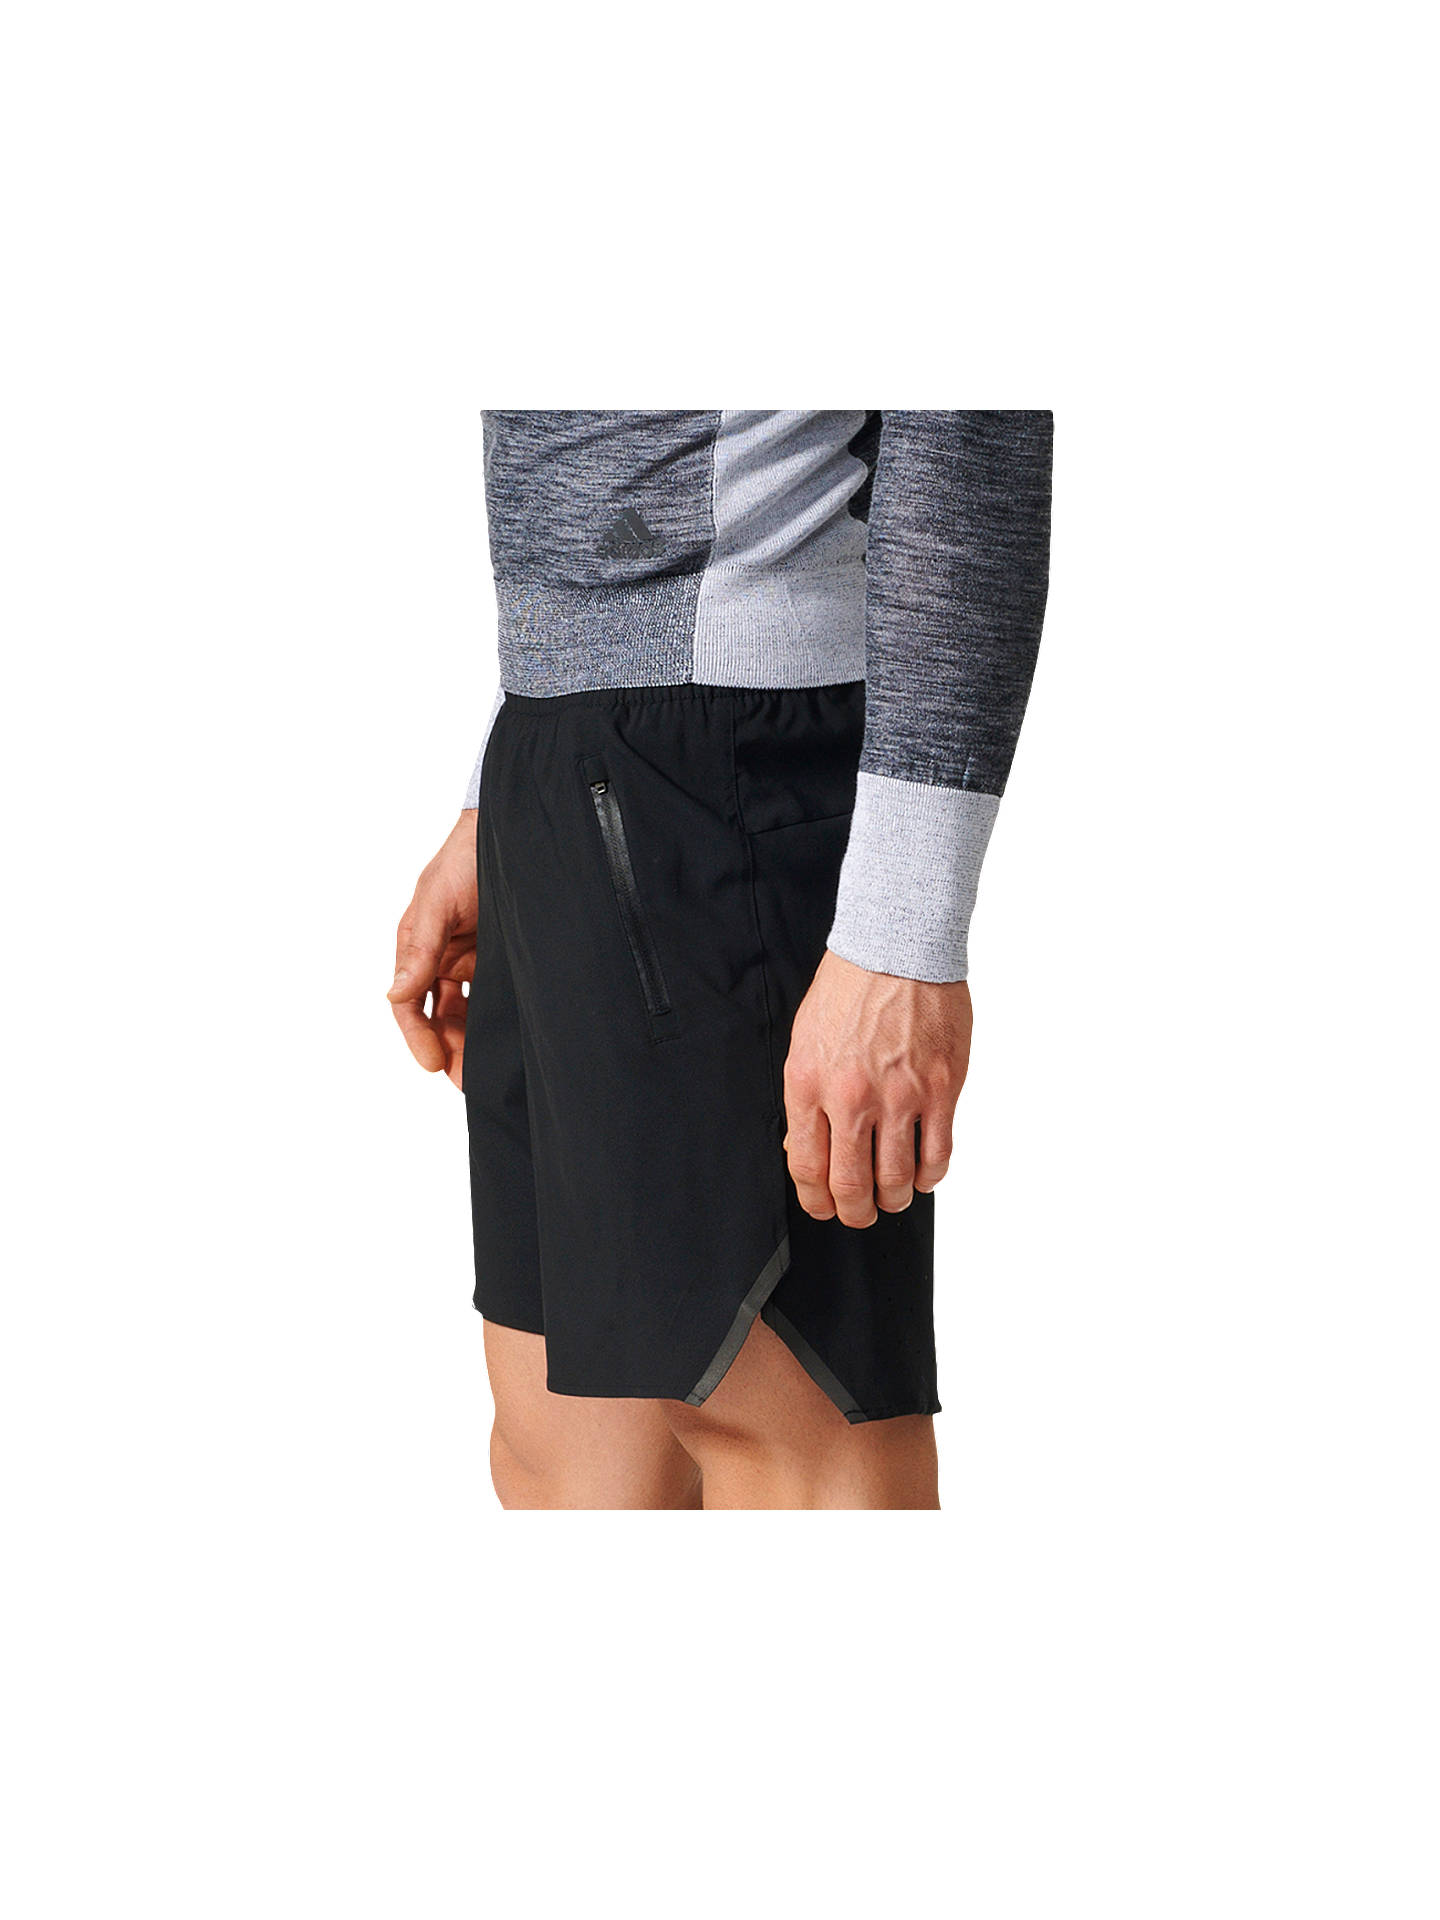 buy popular a8fc2 b5551 ... Buyadidas Ultra Energy Running Shorts, Black, S Online at johnlewis.com  ...